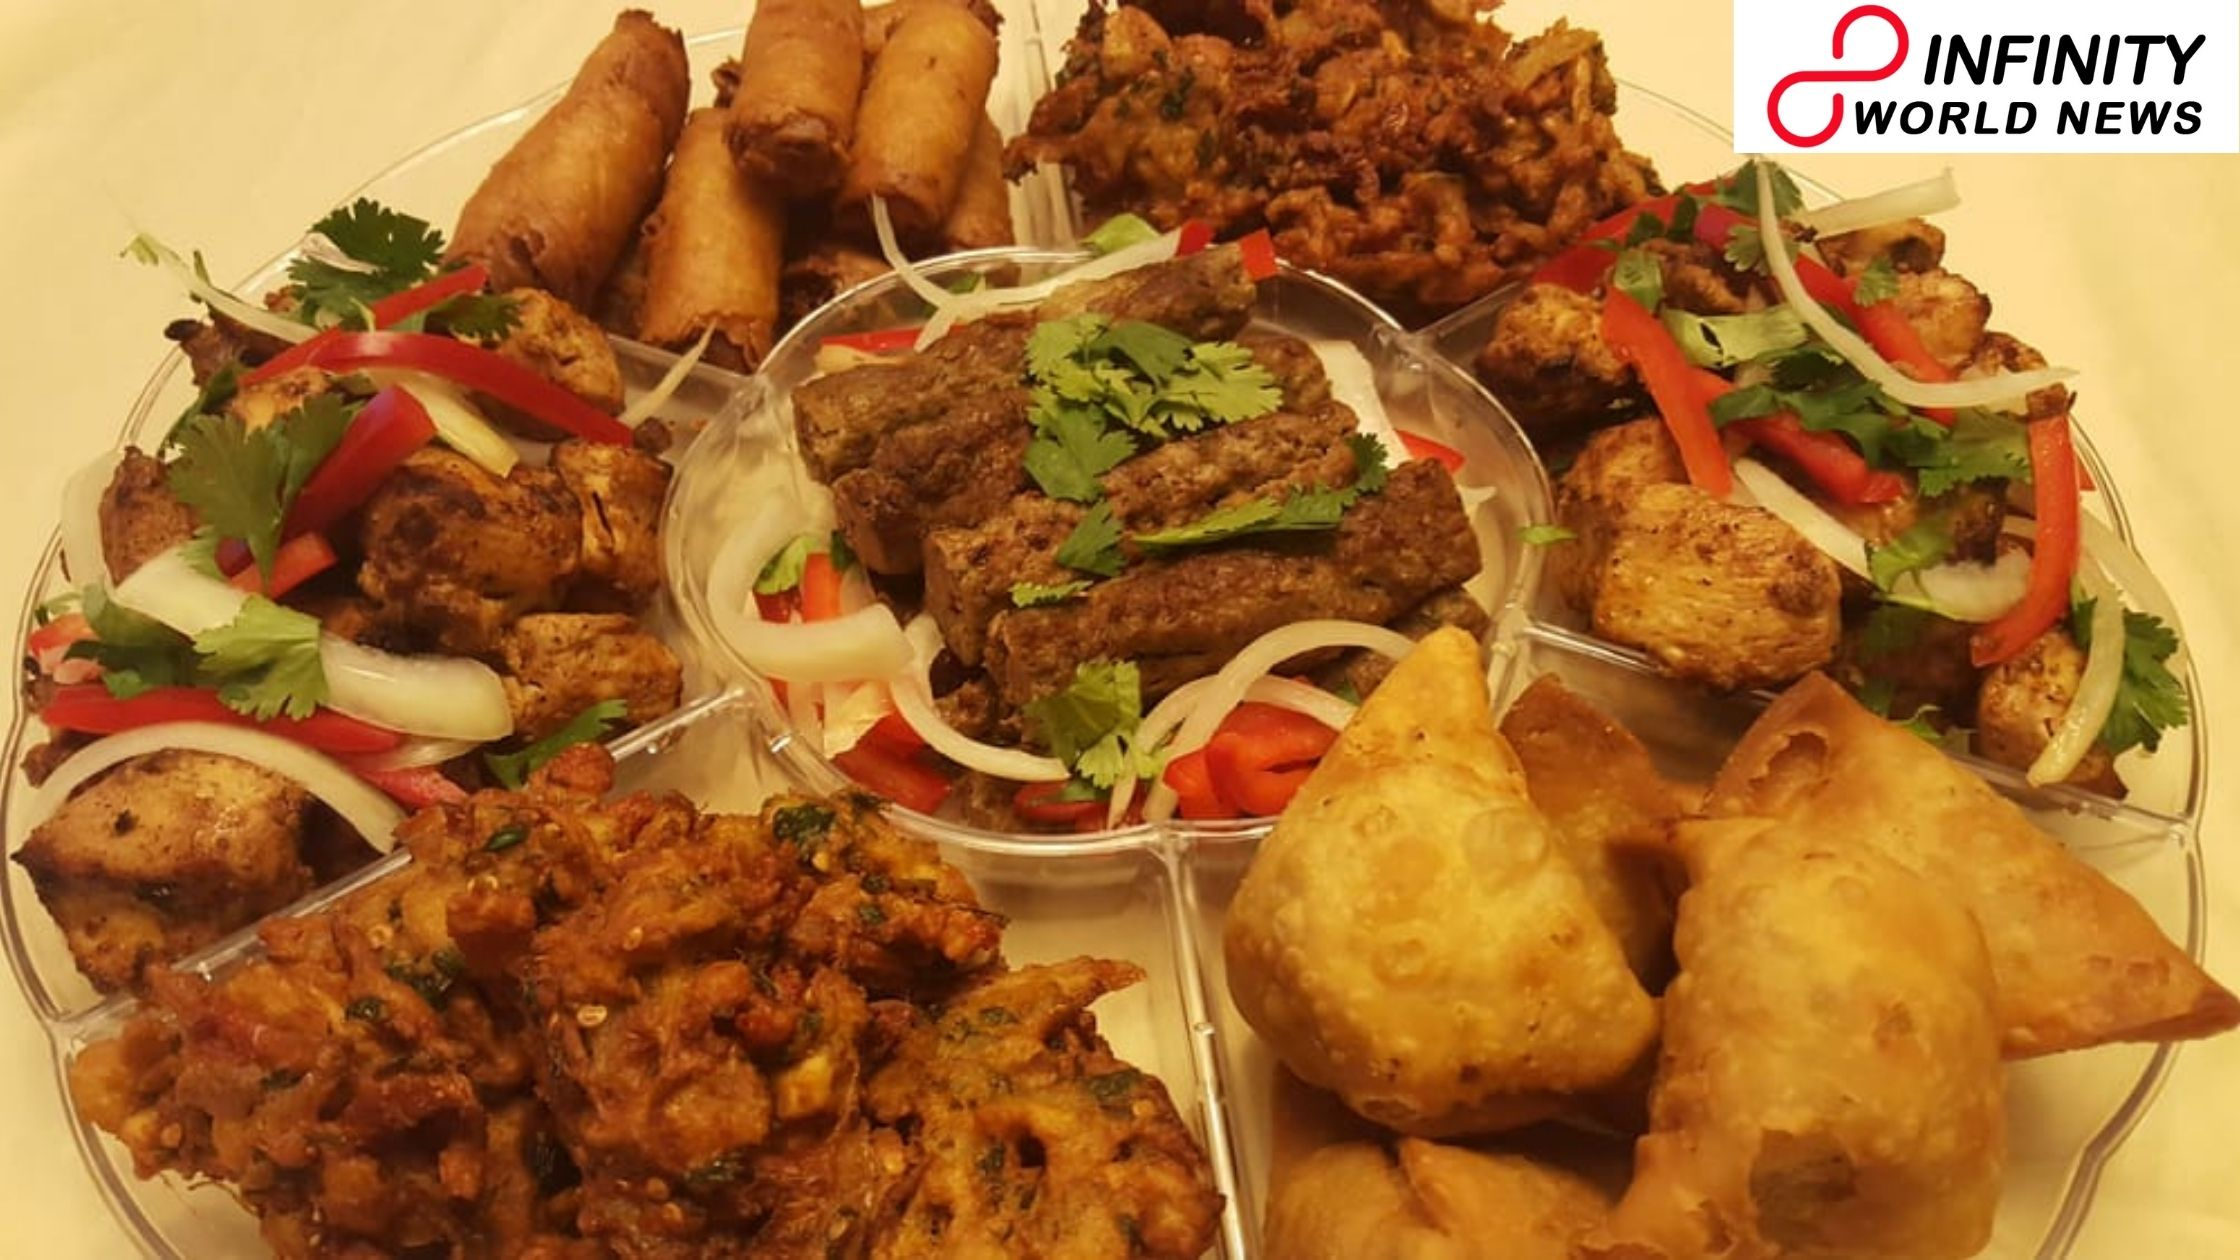 Do and Dont for overseeing diabetes this merry season